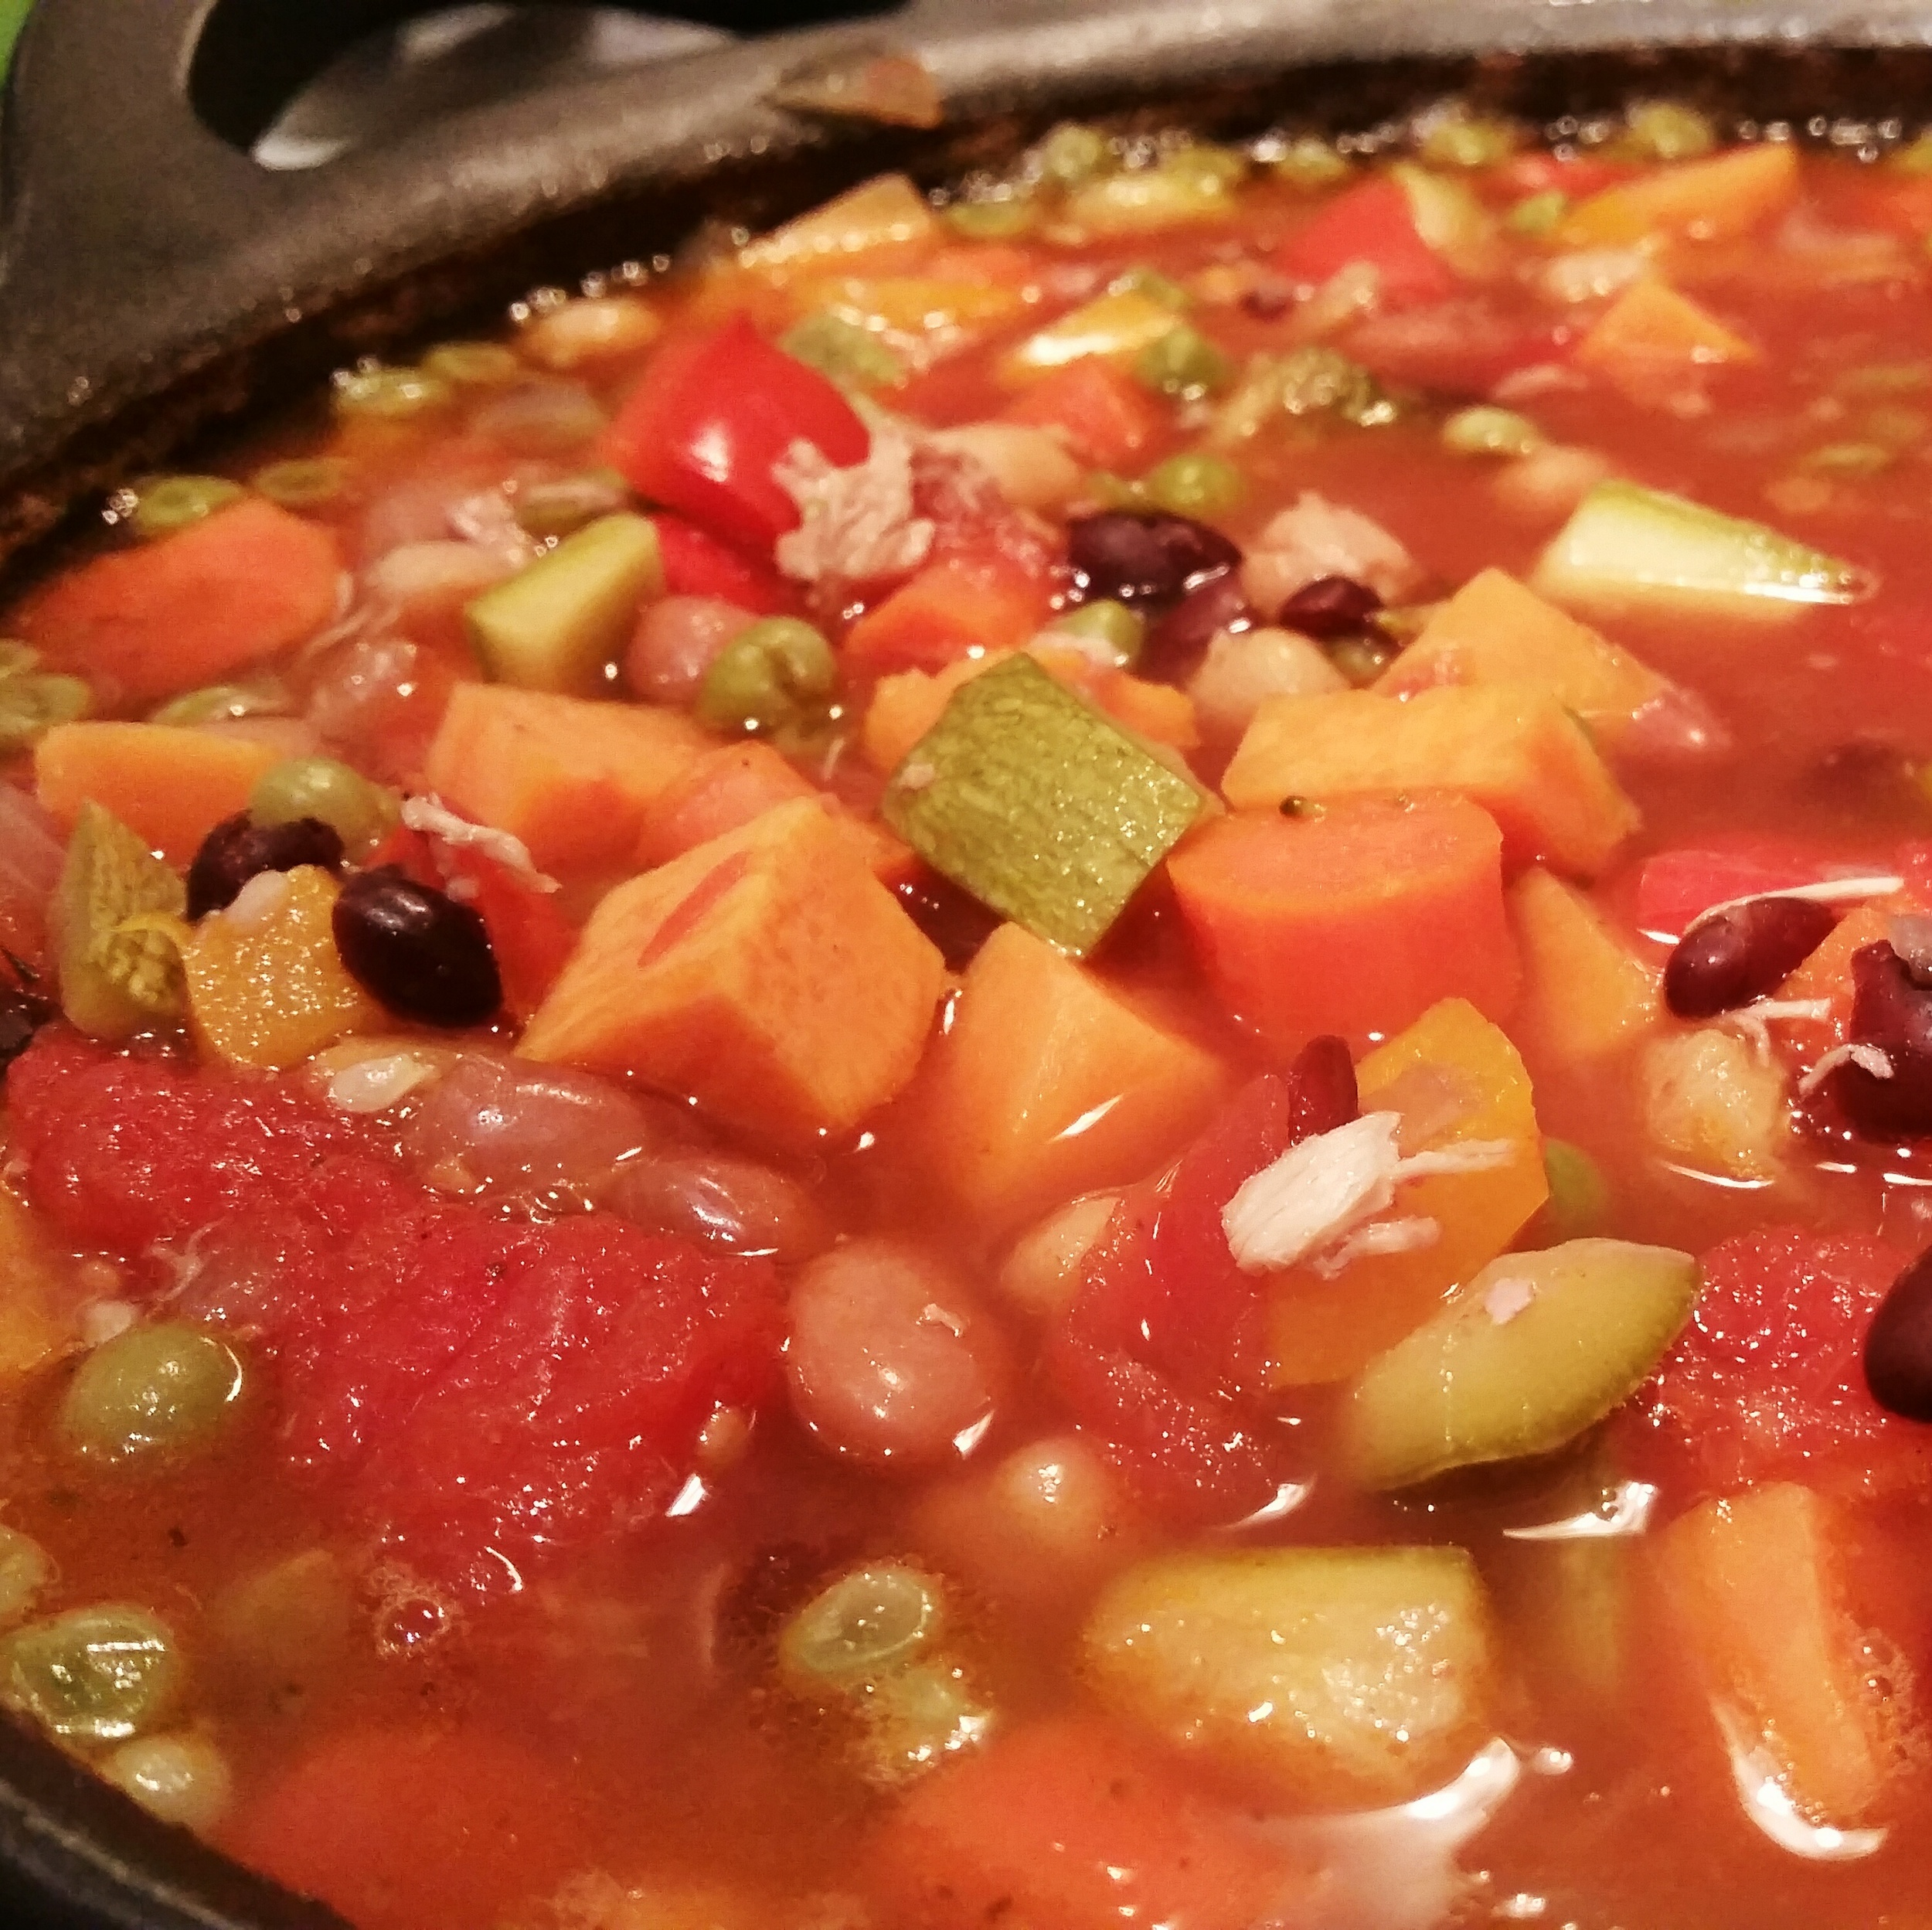 Say hello to my roasted chicken kitchen sink vegetable soup.It was warm and hearty - perfect for cold days!